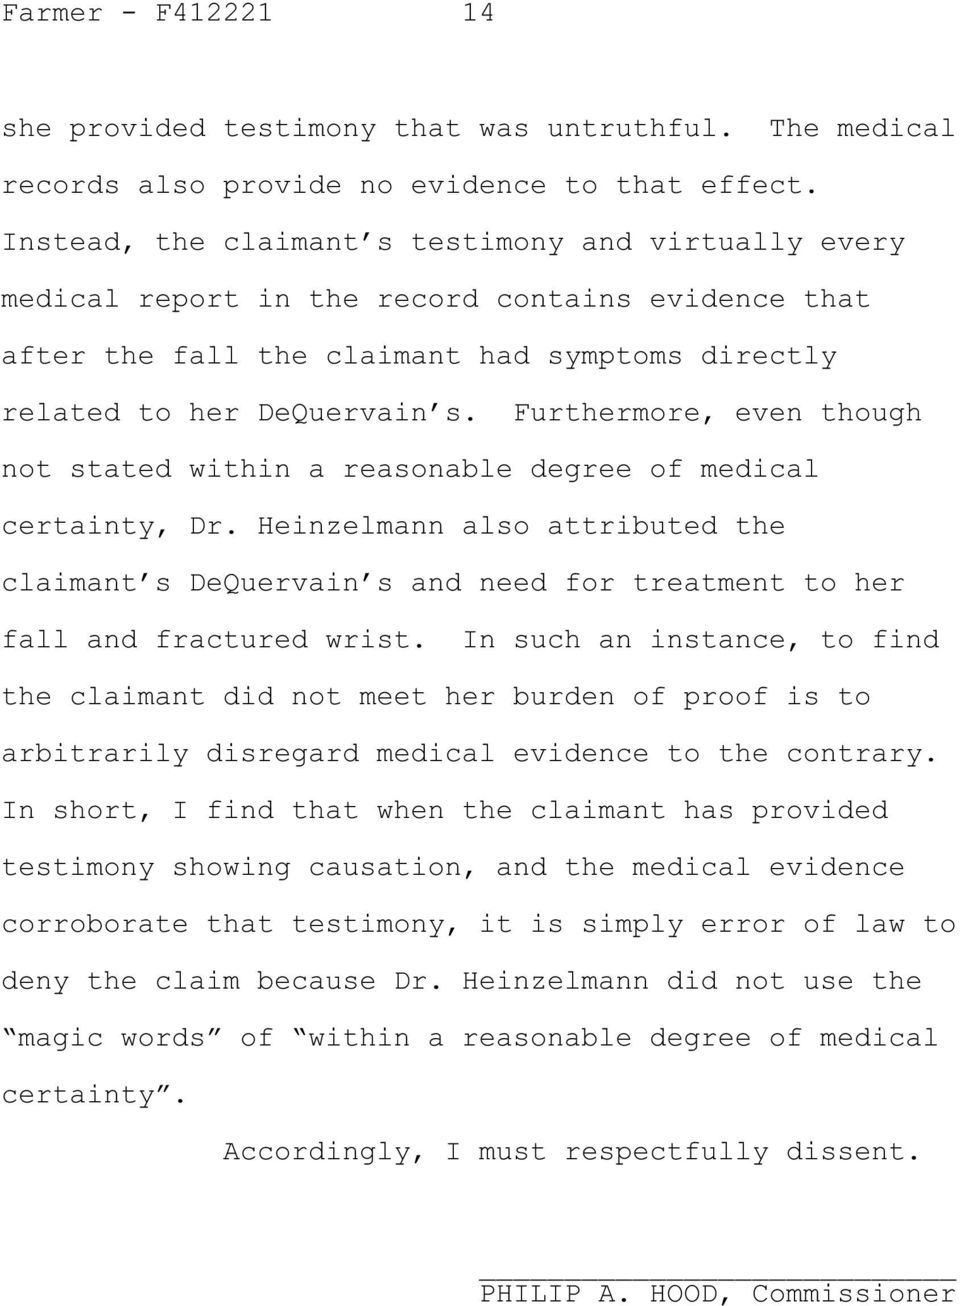 Furthermore, even though not stated within a reasonable degree of medical certainty, Dr. Heinzelmann also attributed the claimant s DeQuervain s and need for treatment to her fall and fractured wrist.